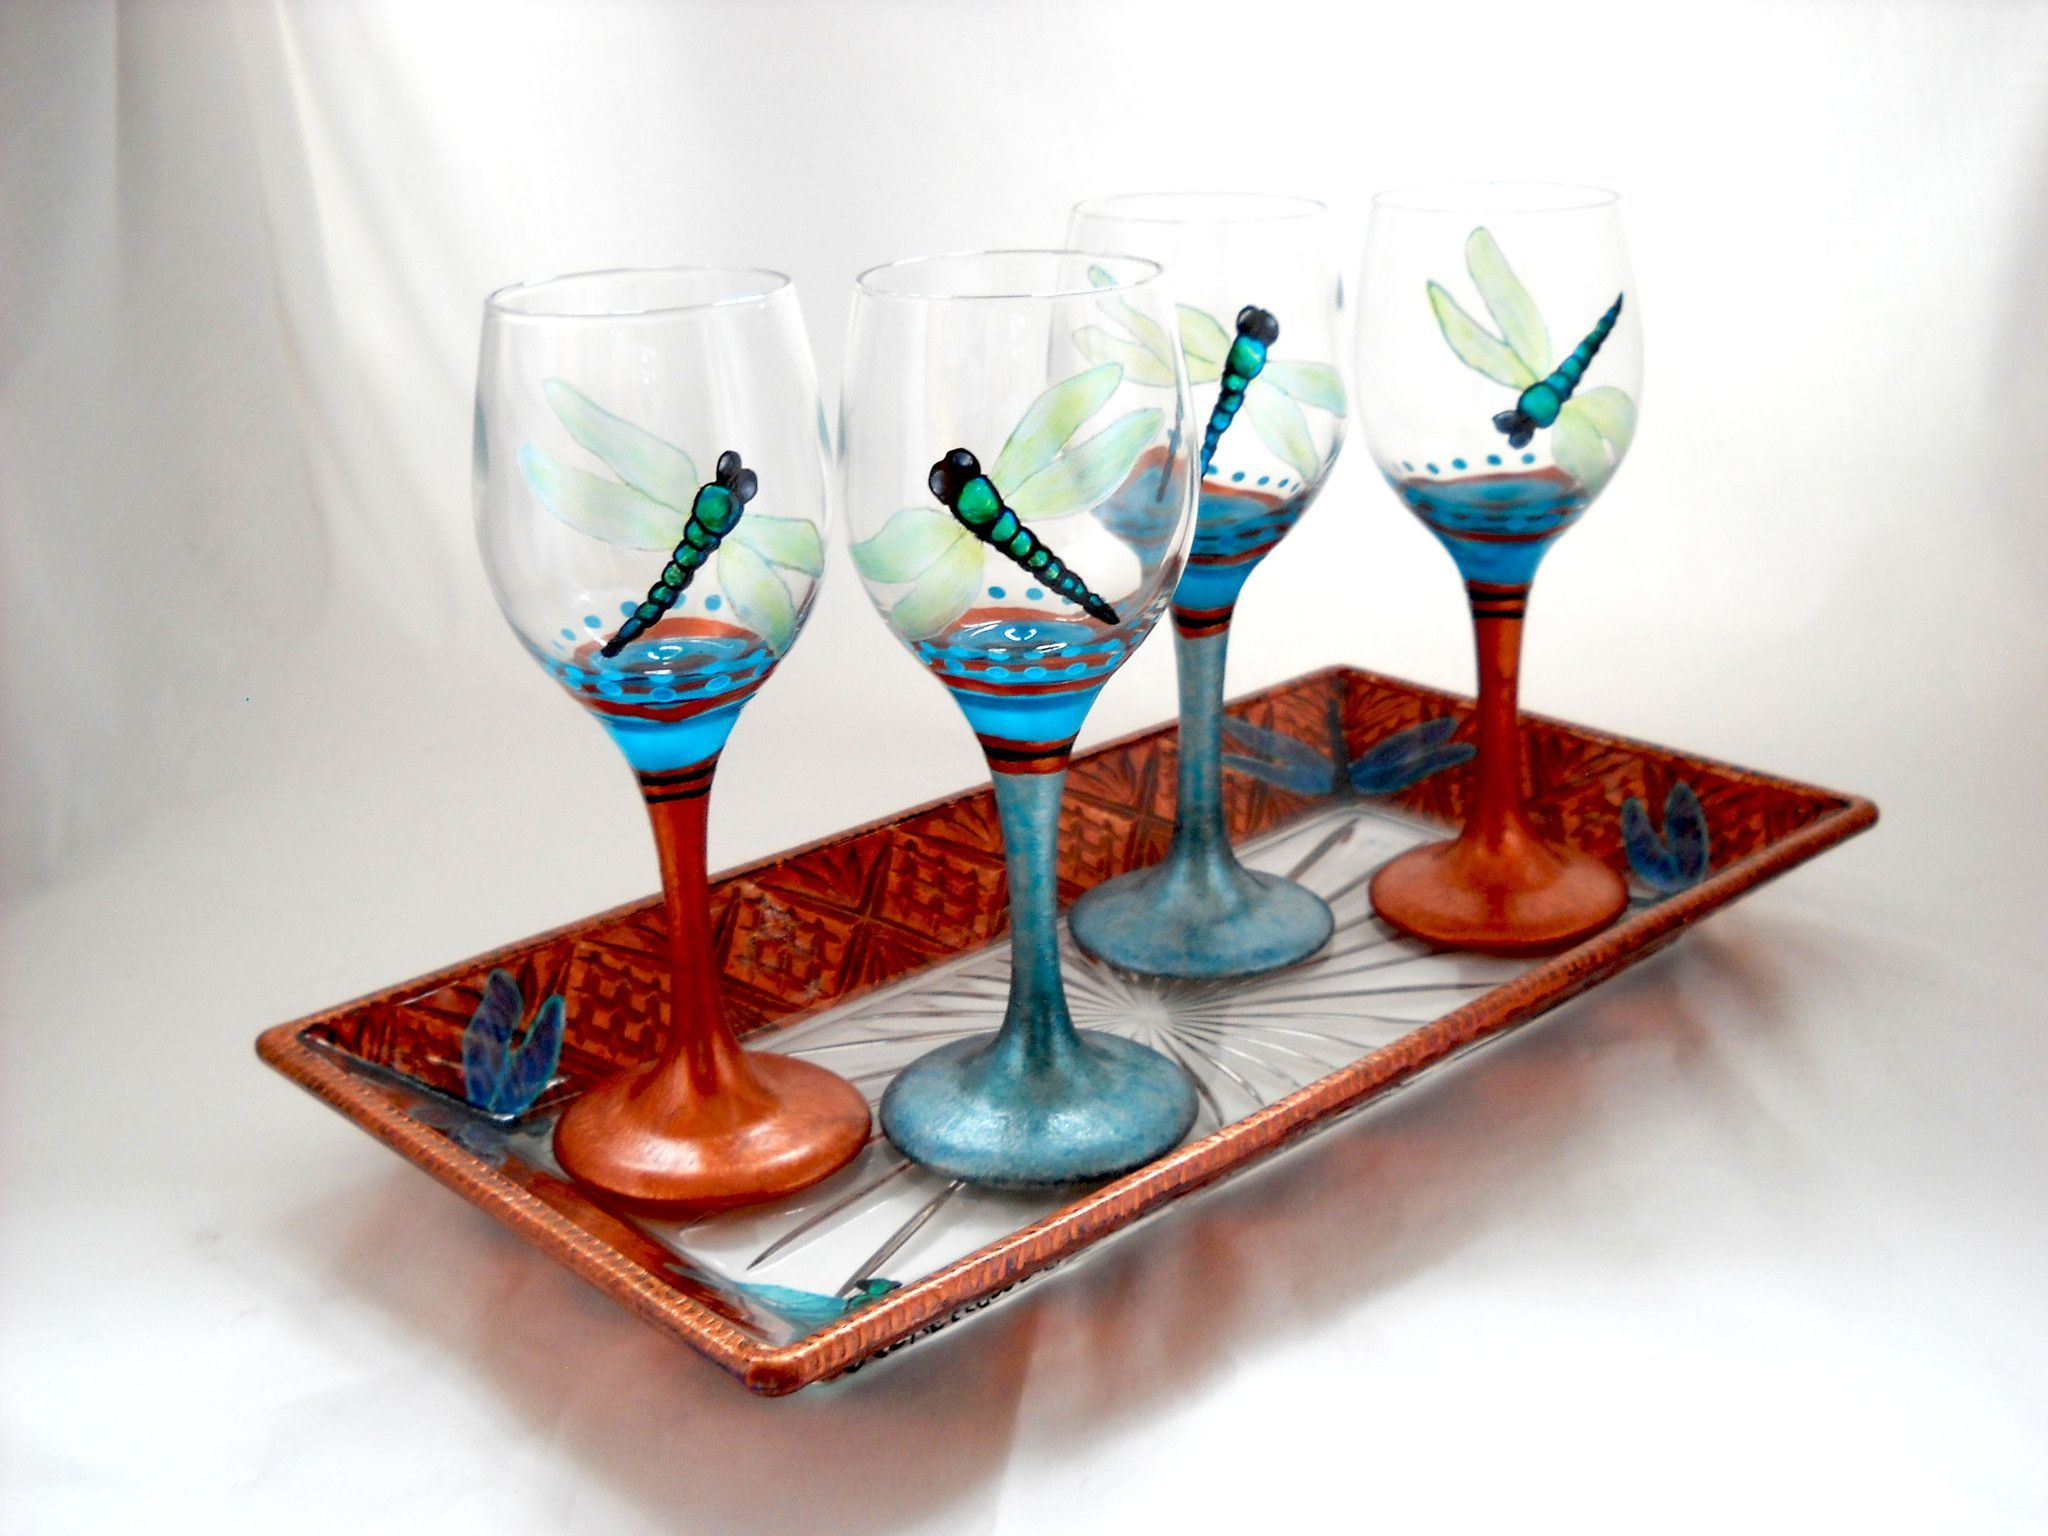 Dragonfly Mini Wine Glassware Hand Painted Cordial Glasses Wine Glassware Glassware Hand Painted